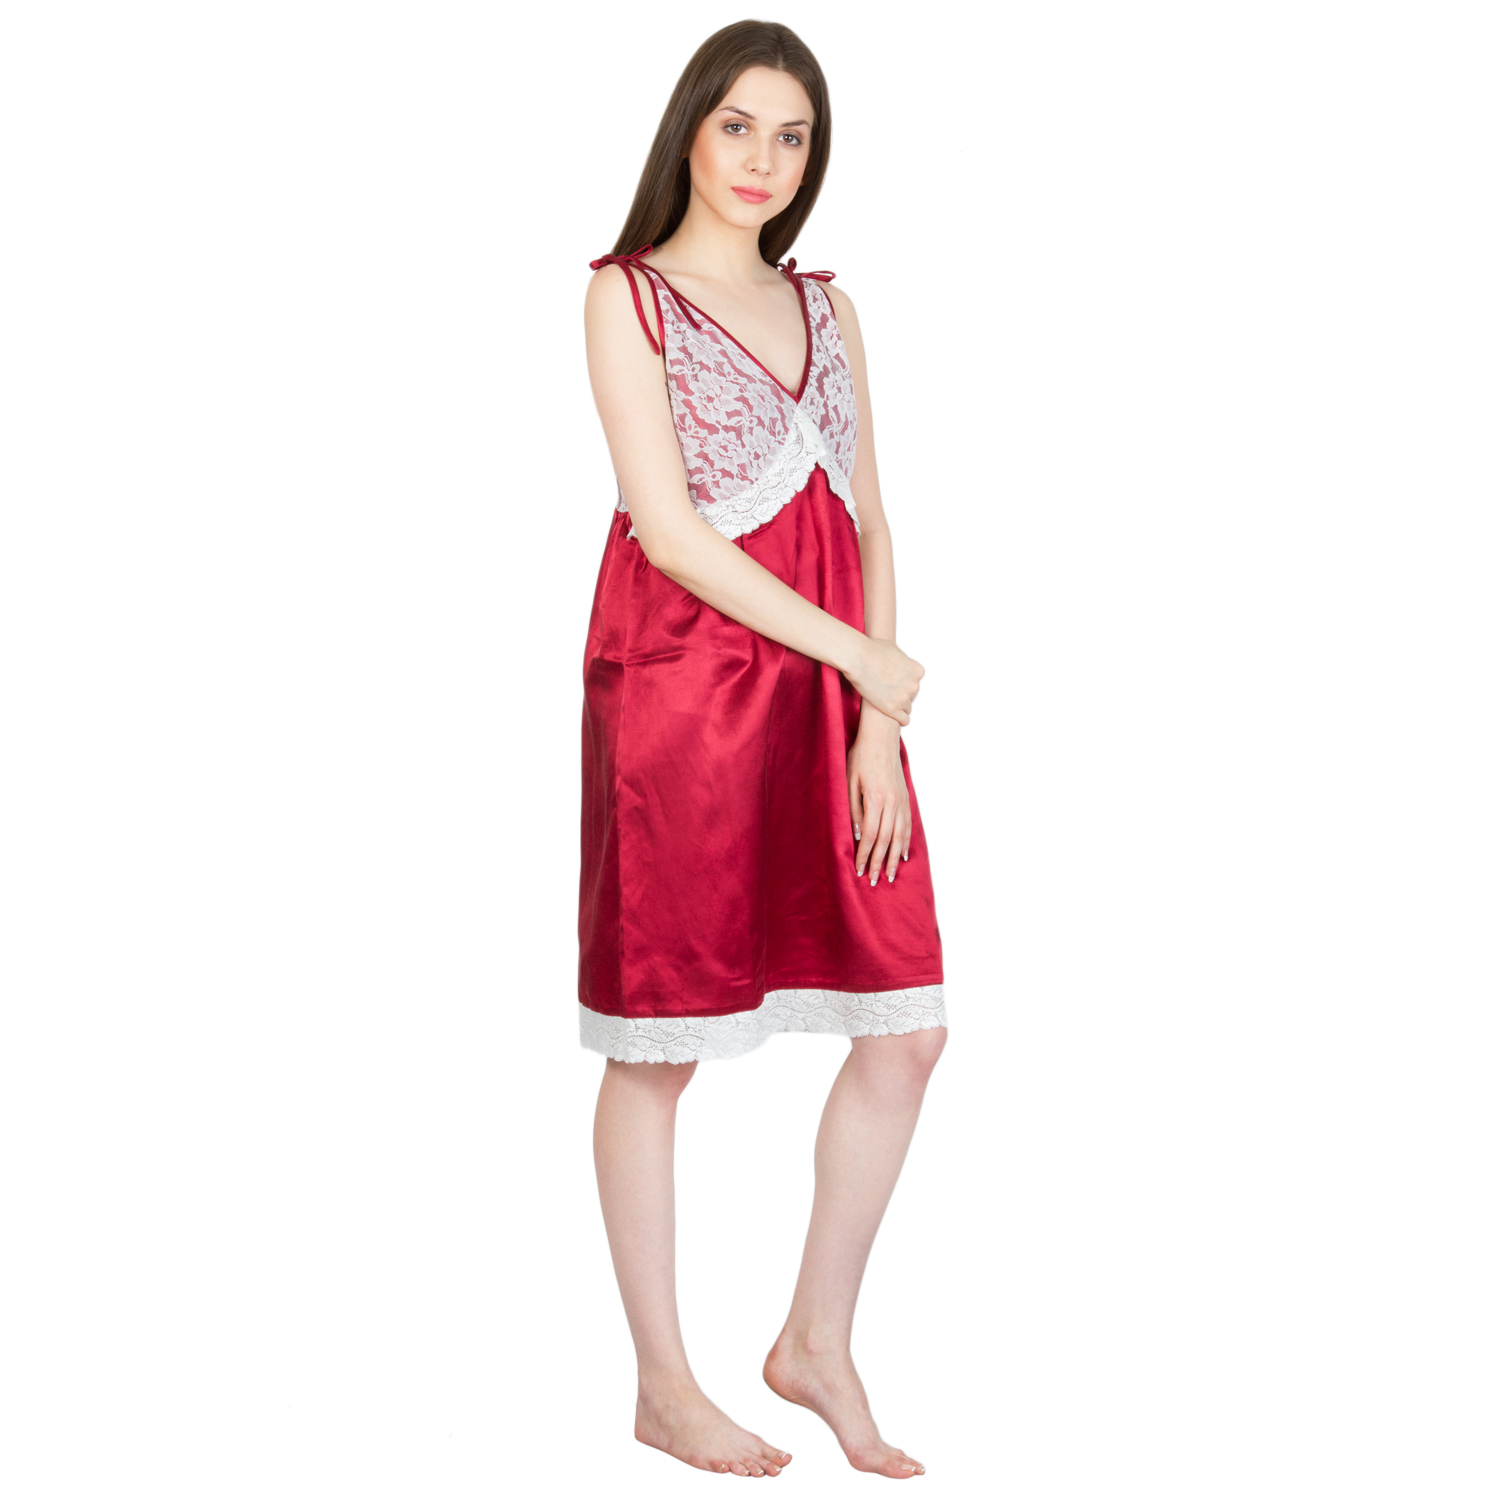 Patrorna Short Length Two Piece Bone Red Stylish Natural Fabric ... eac15ce0e